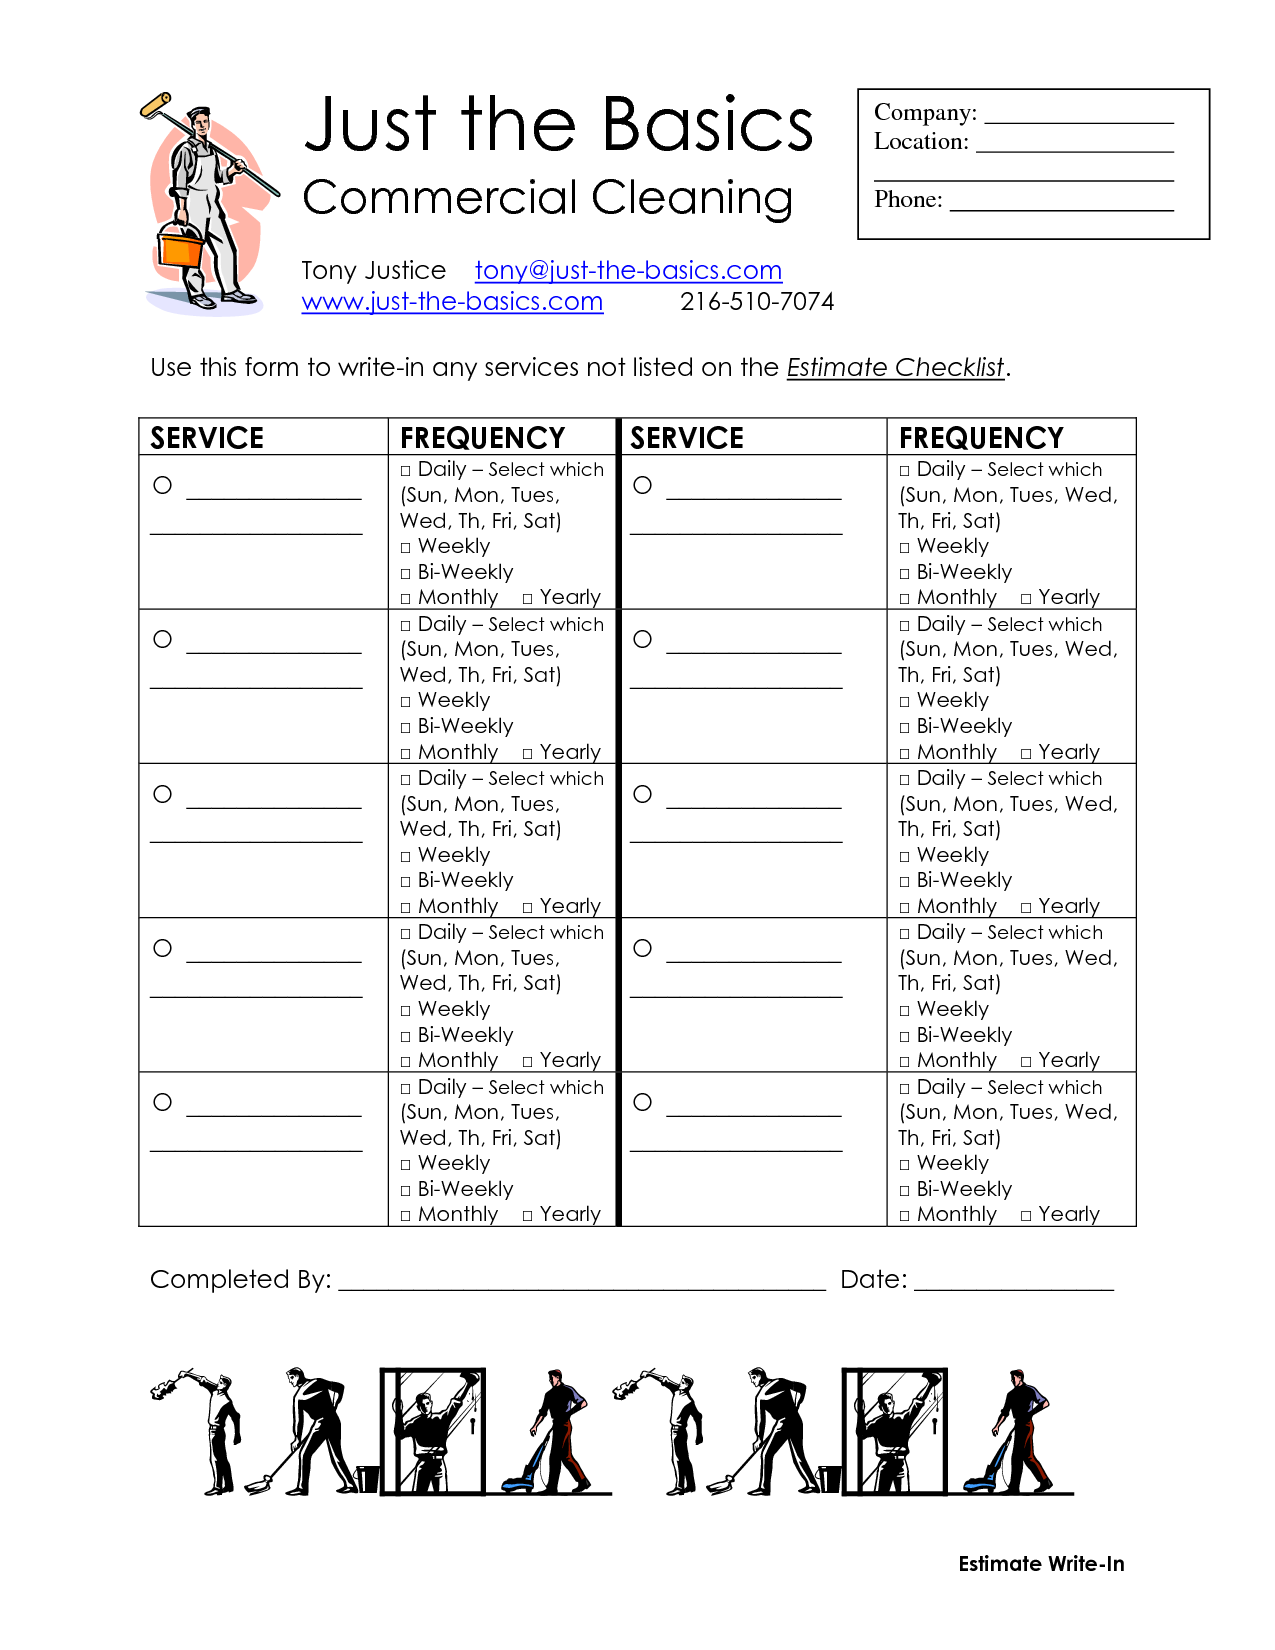 commercial cleaning checklist template - Madran kaptanband co